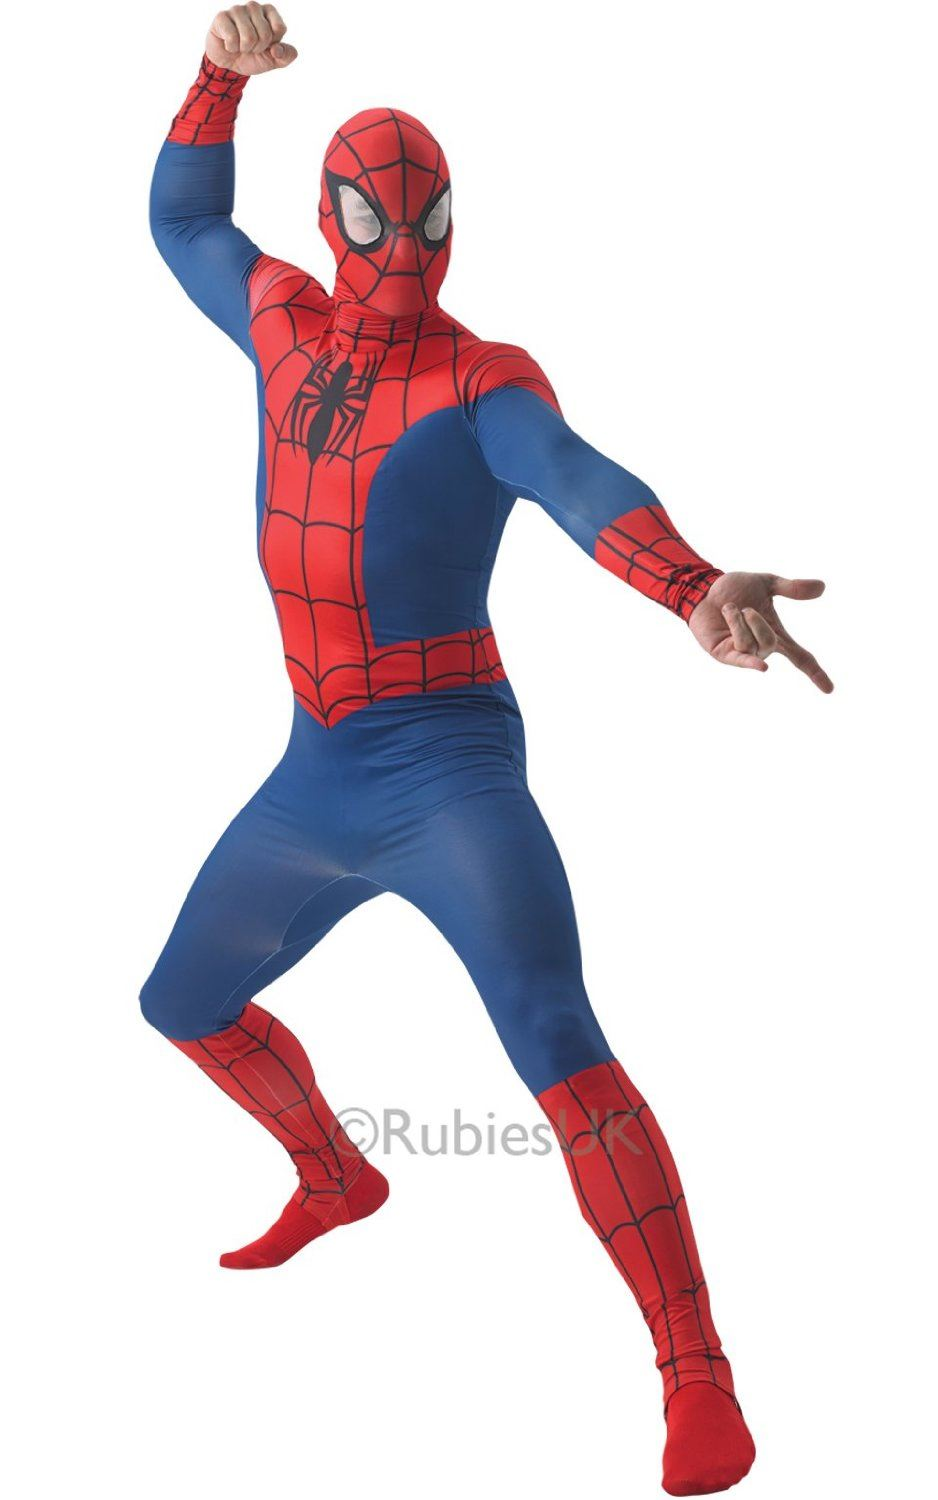 Spider Man Halloween Costume Adults.Details About Mens Spiderman Costume Adult Skin Official Marvel Superhero Fancy Dress Outfit